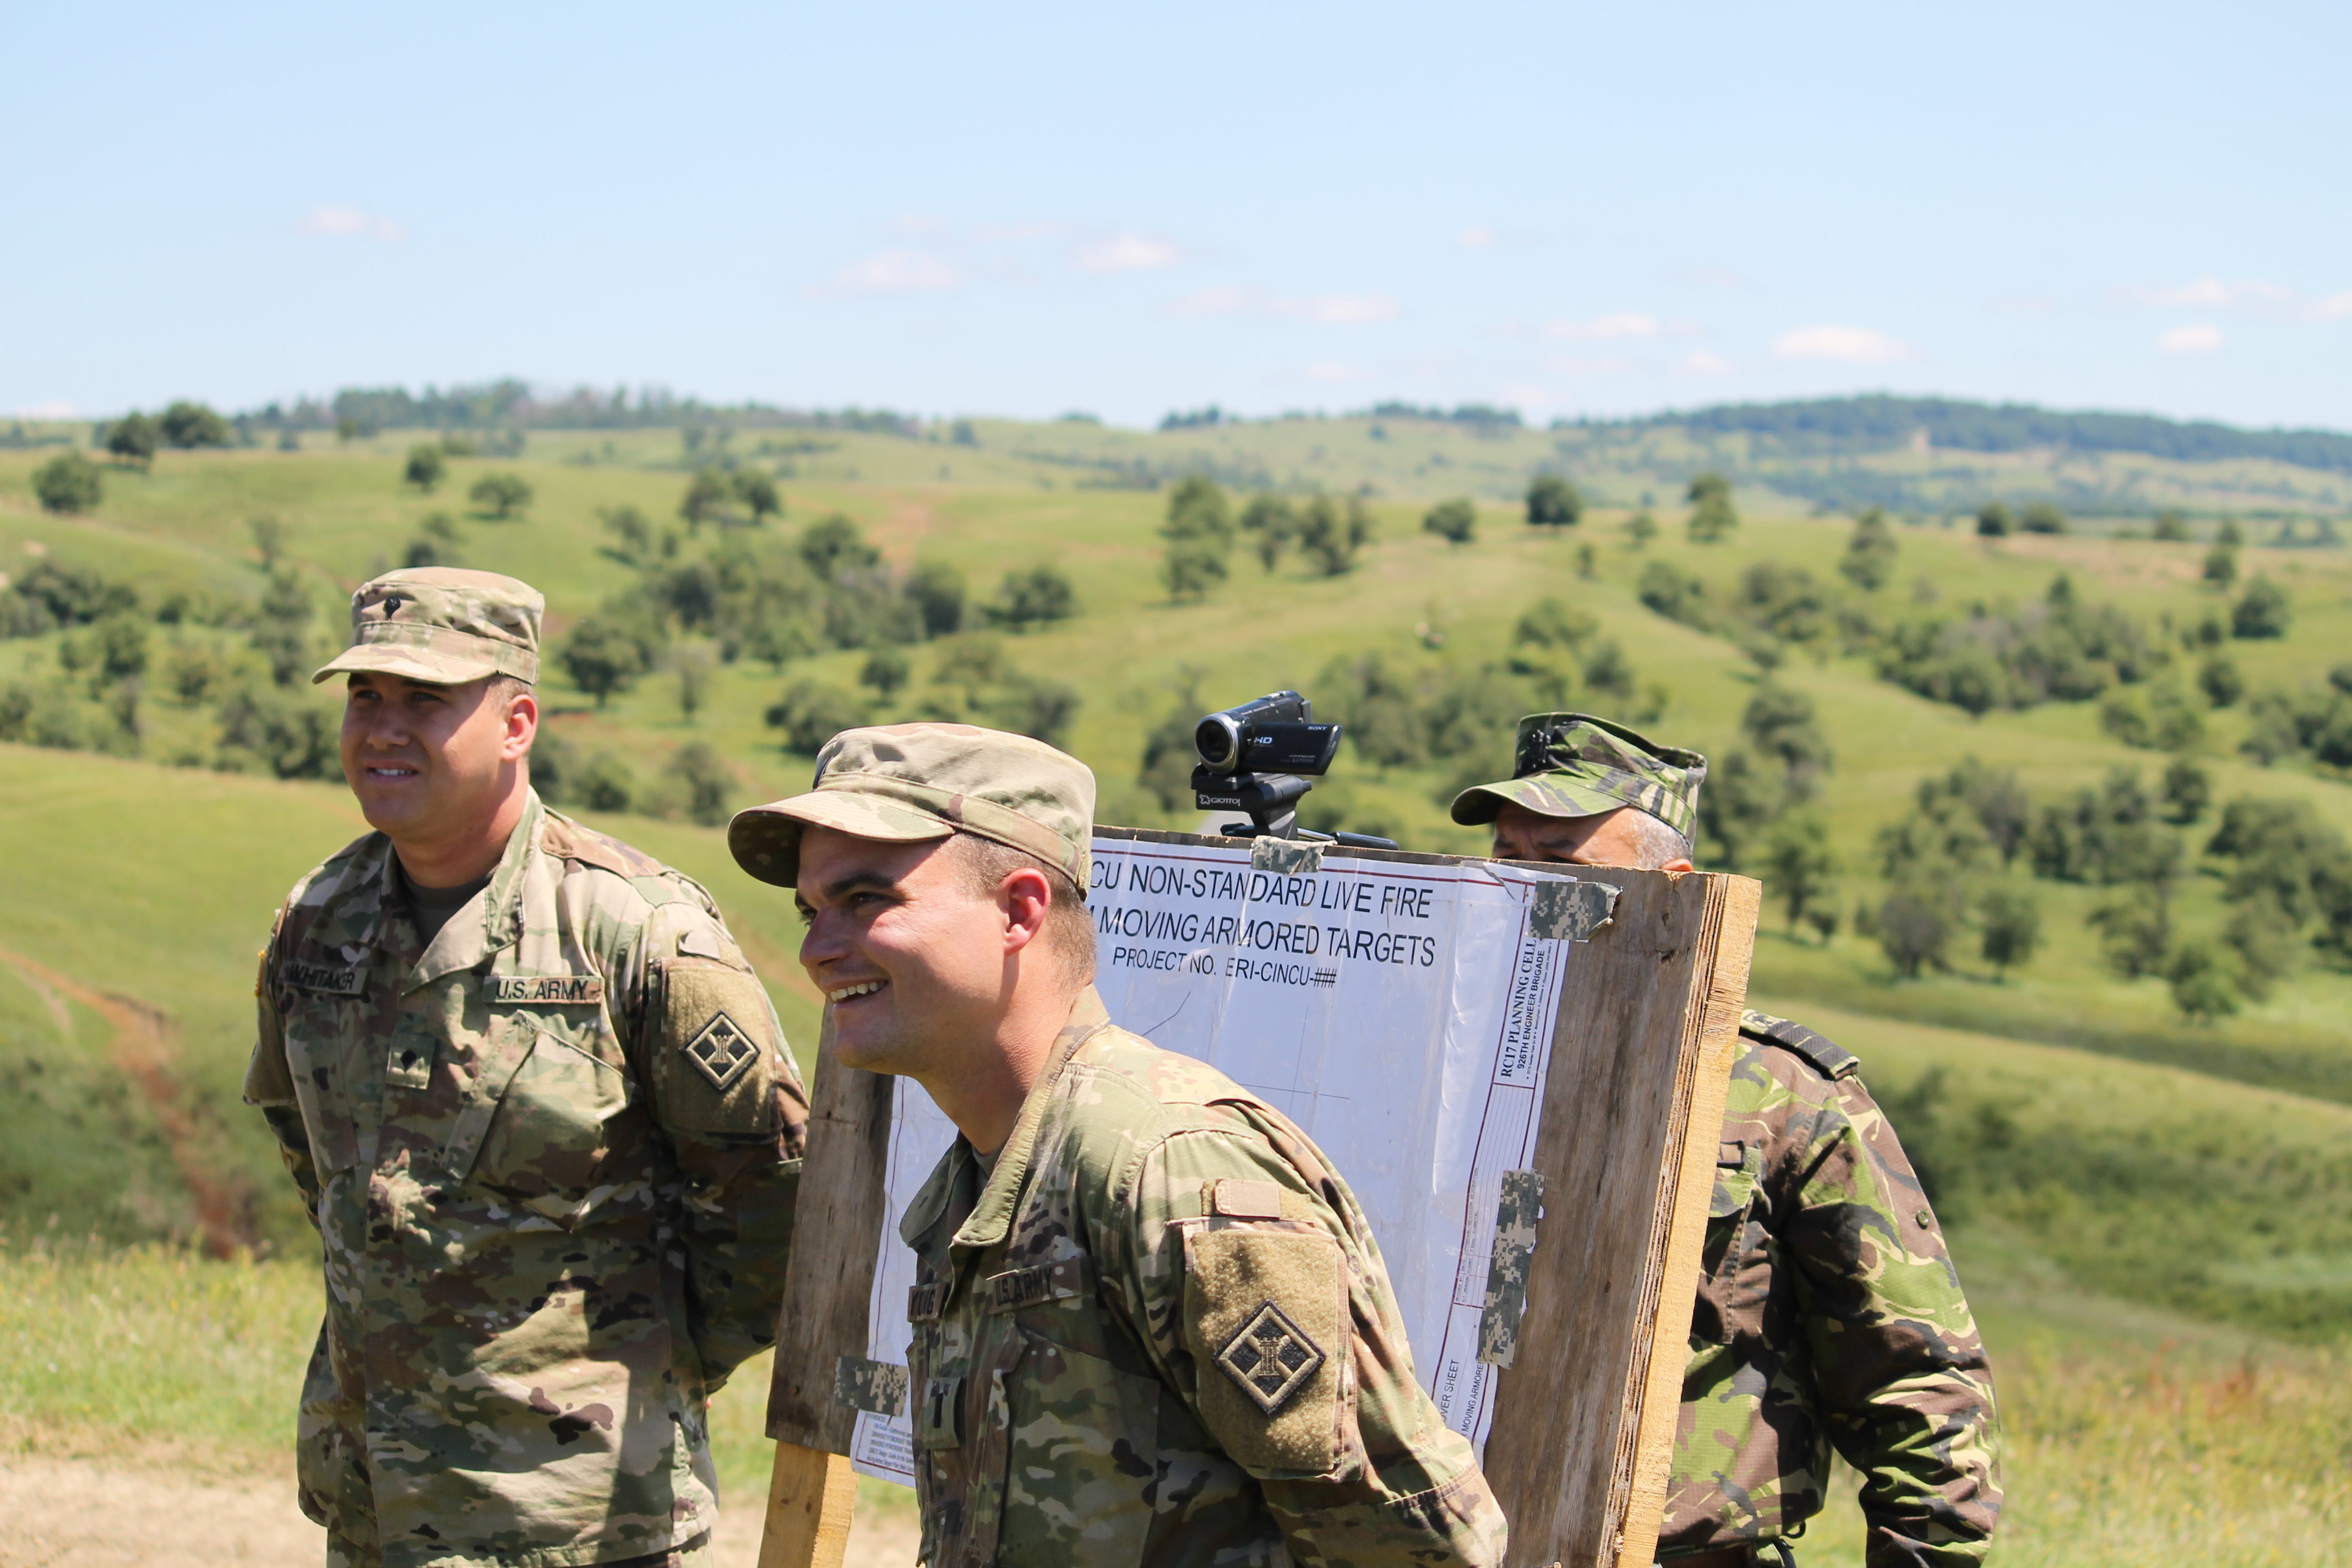 A group of U.S reservists from the 926th Engineering Brigade brief distinguished visitors, including Lt. Gen. Ben Hodges and U.S. ambassador to Romania Hans Klemm, on July 14 overlooking the nonstandard live fire training range. (Jen Judson/Staff)